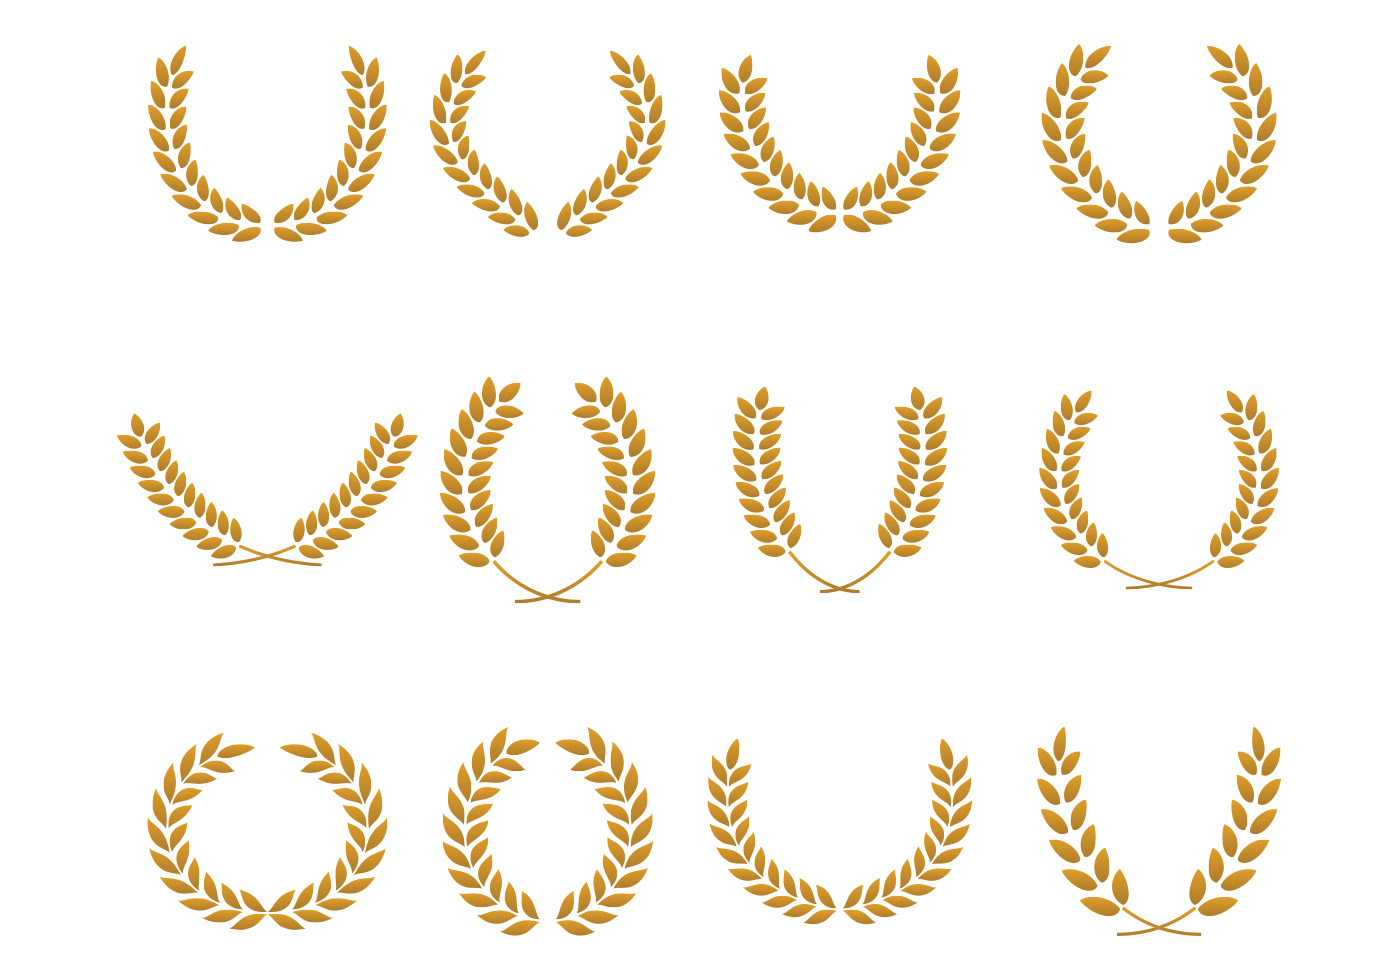 Free Wheat Vector - Download Free Vector Art, Stock ...